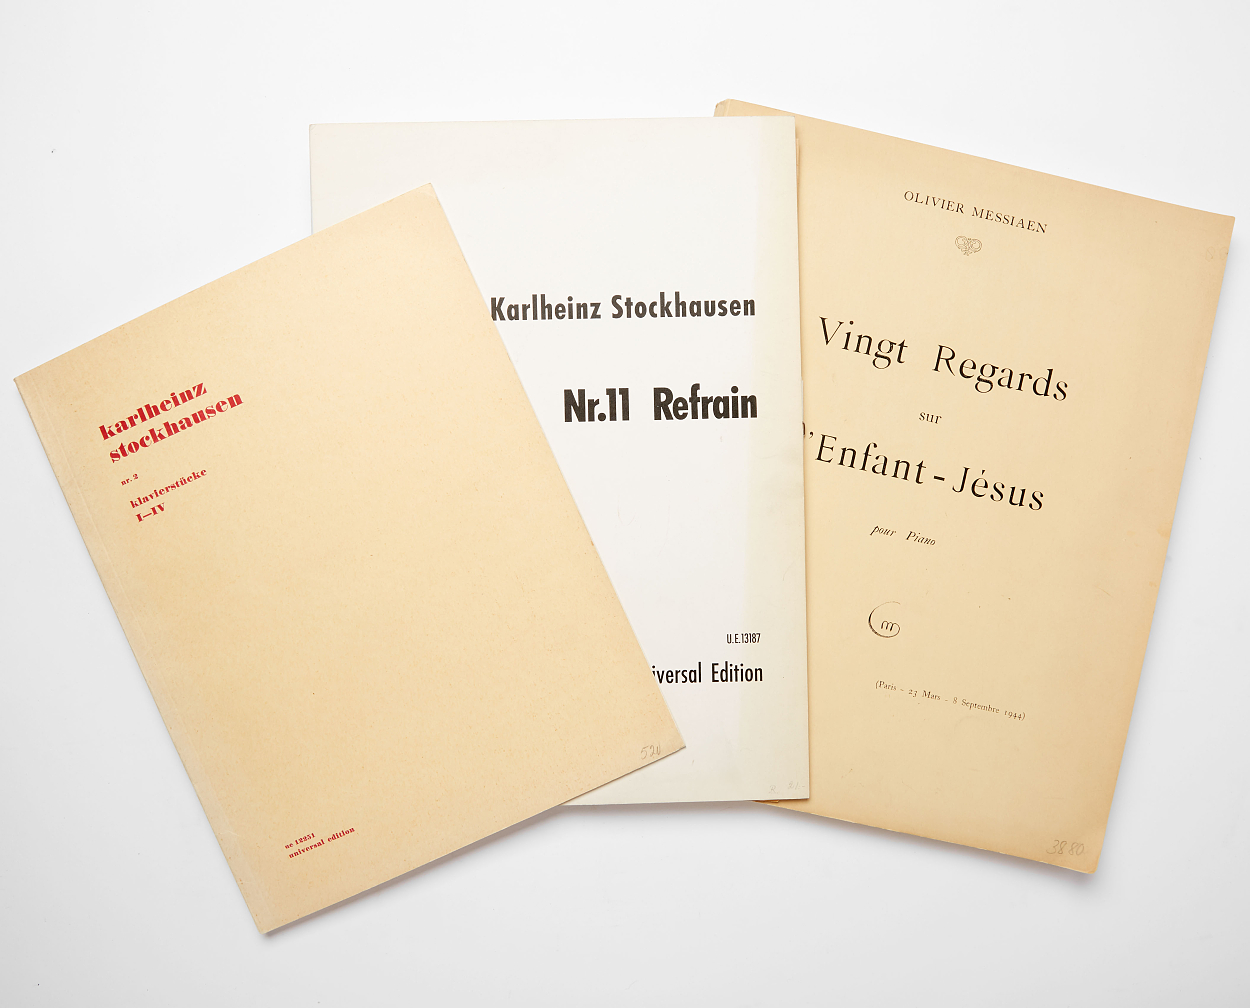 Karl Böhm - two autographed working copies